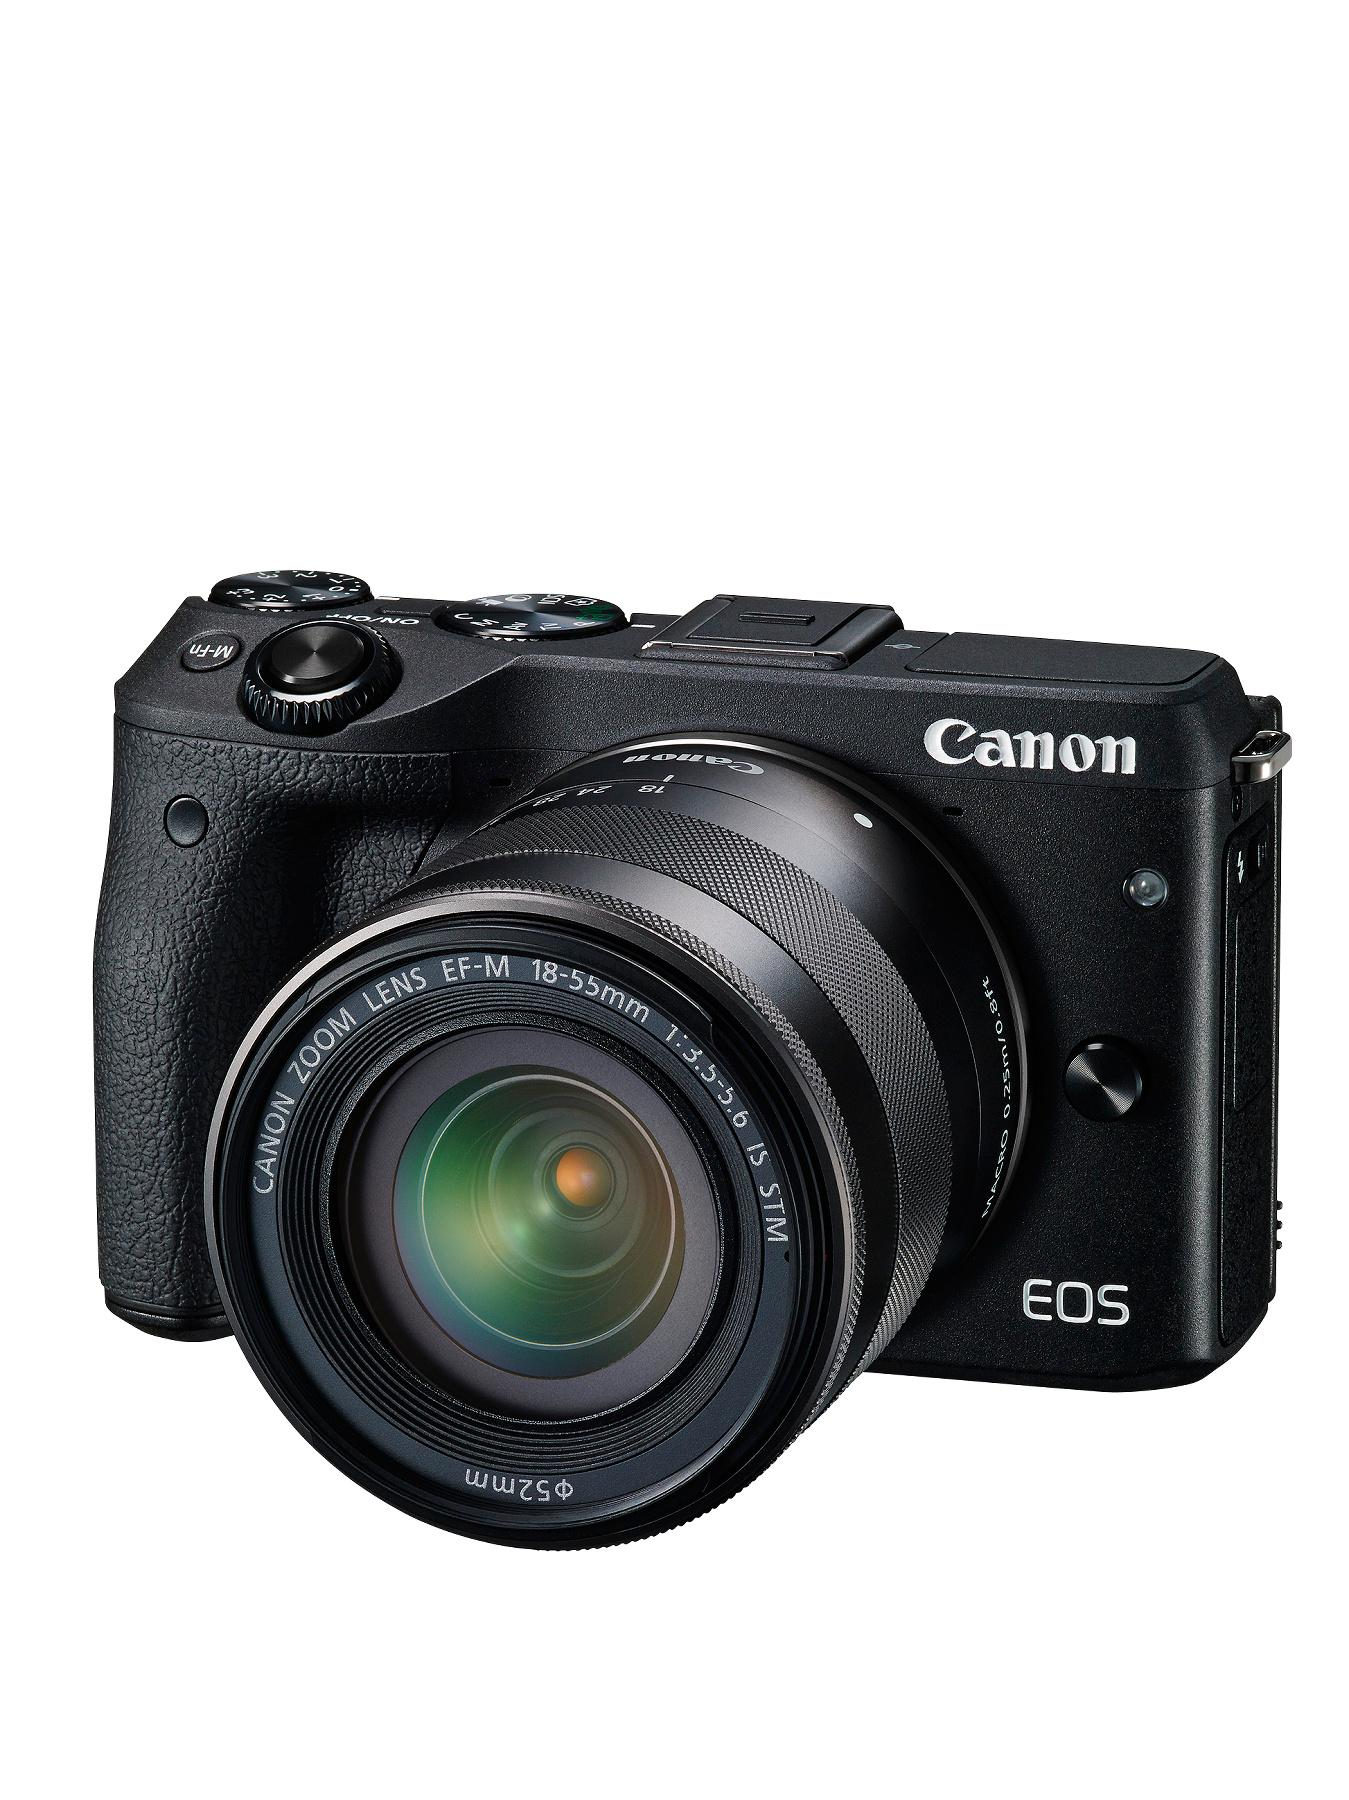 Canon EOS M3 Camera with EF-M 18-55mm Lens - Black, Black